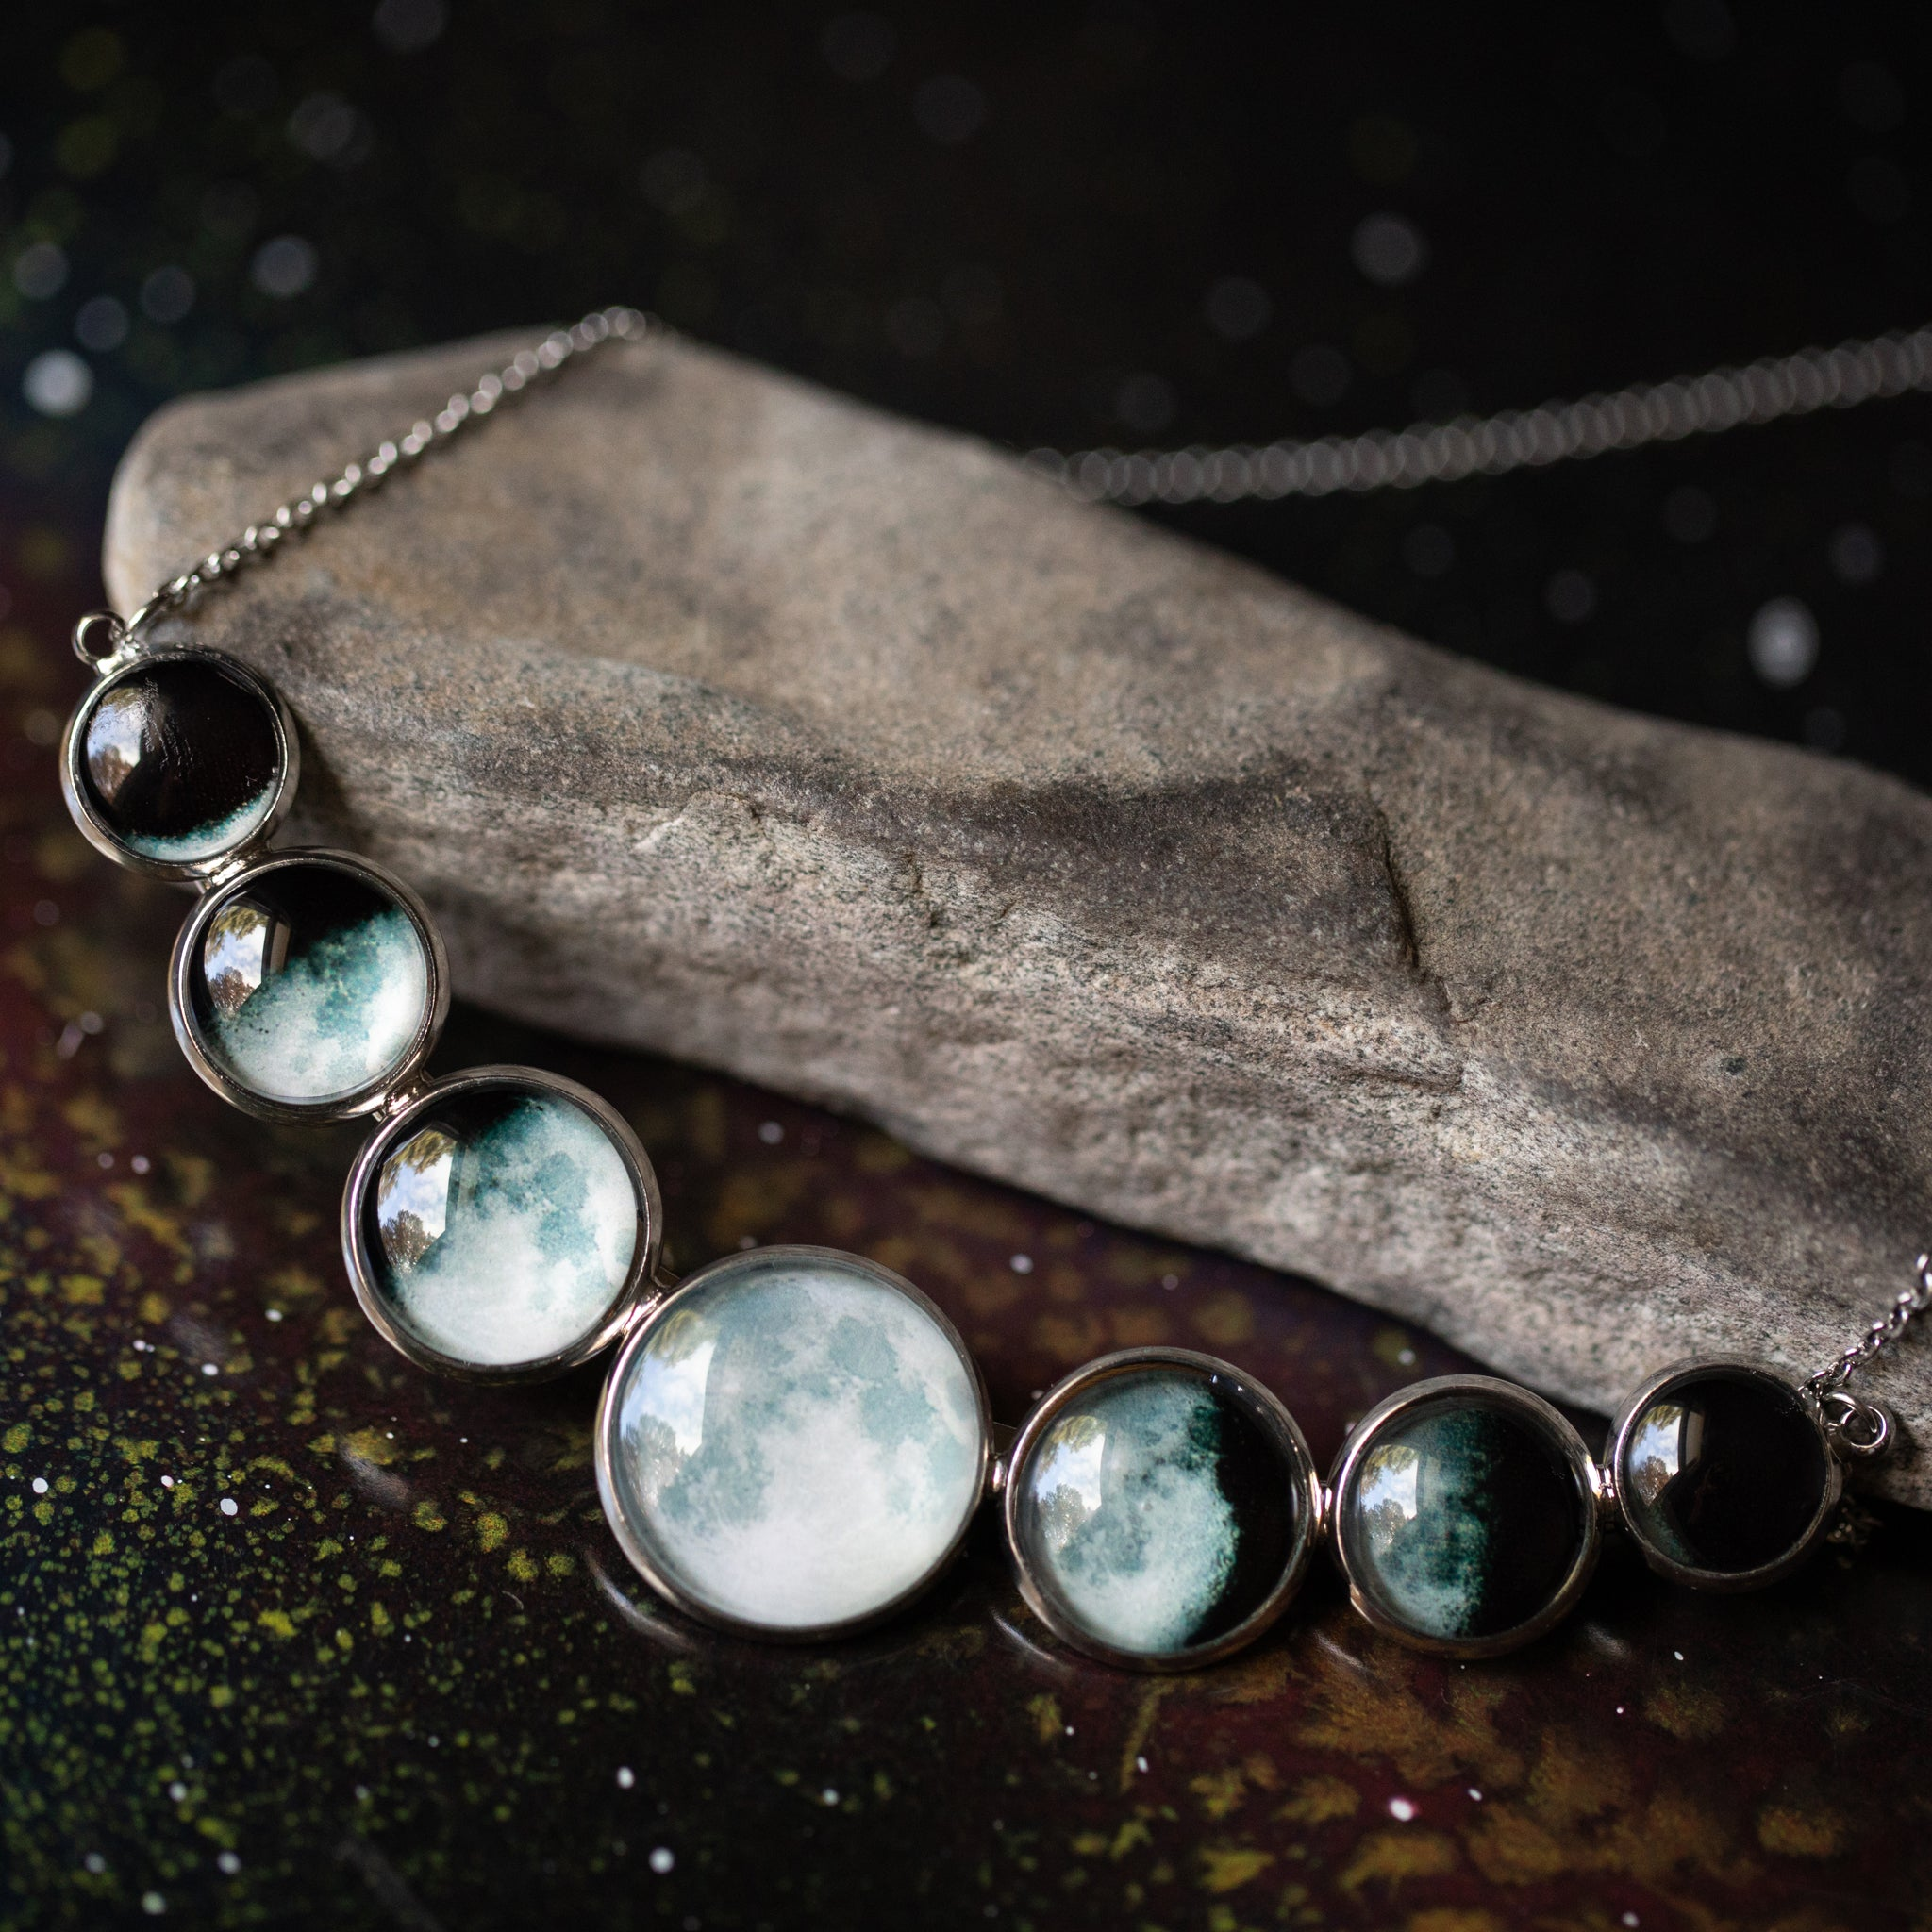 Varying Sized Curved Moon Phase Necklace in Silver - Yugen Tribe